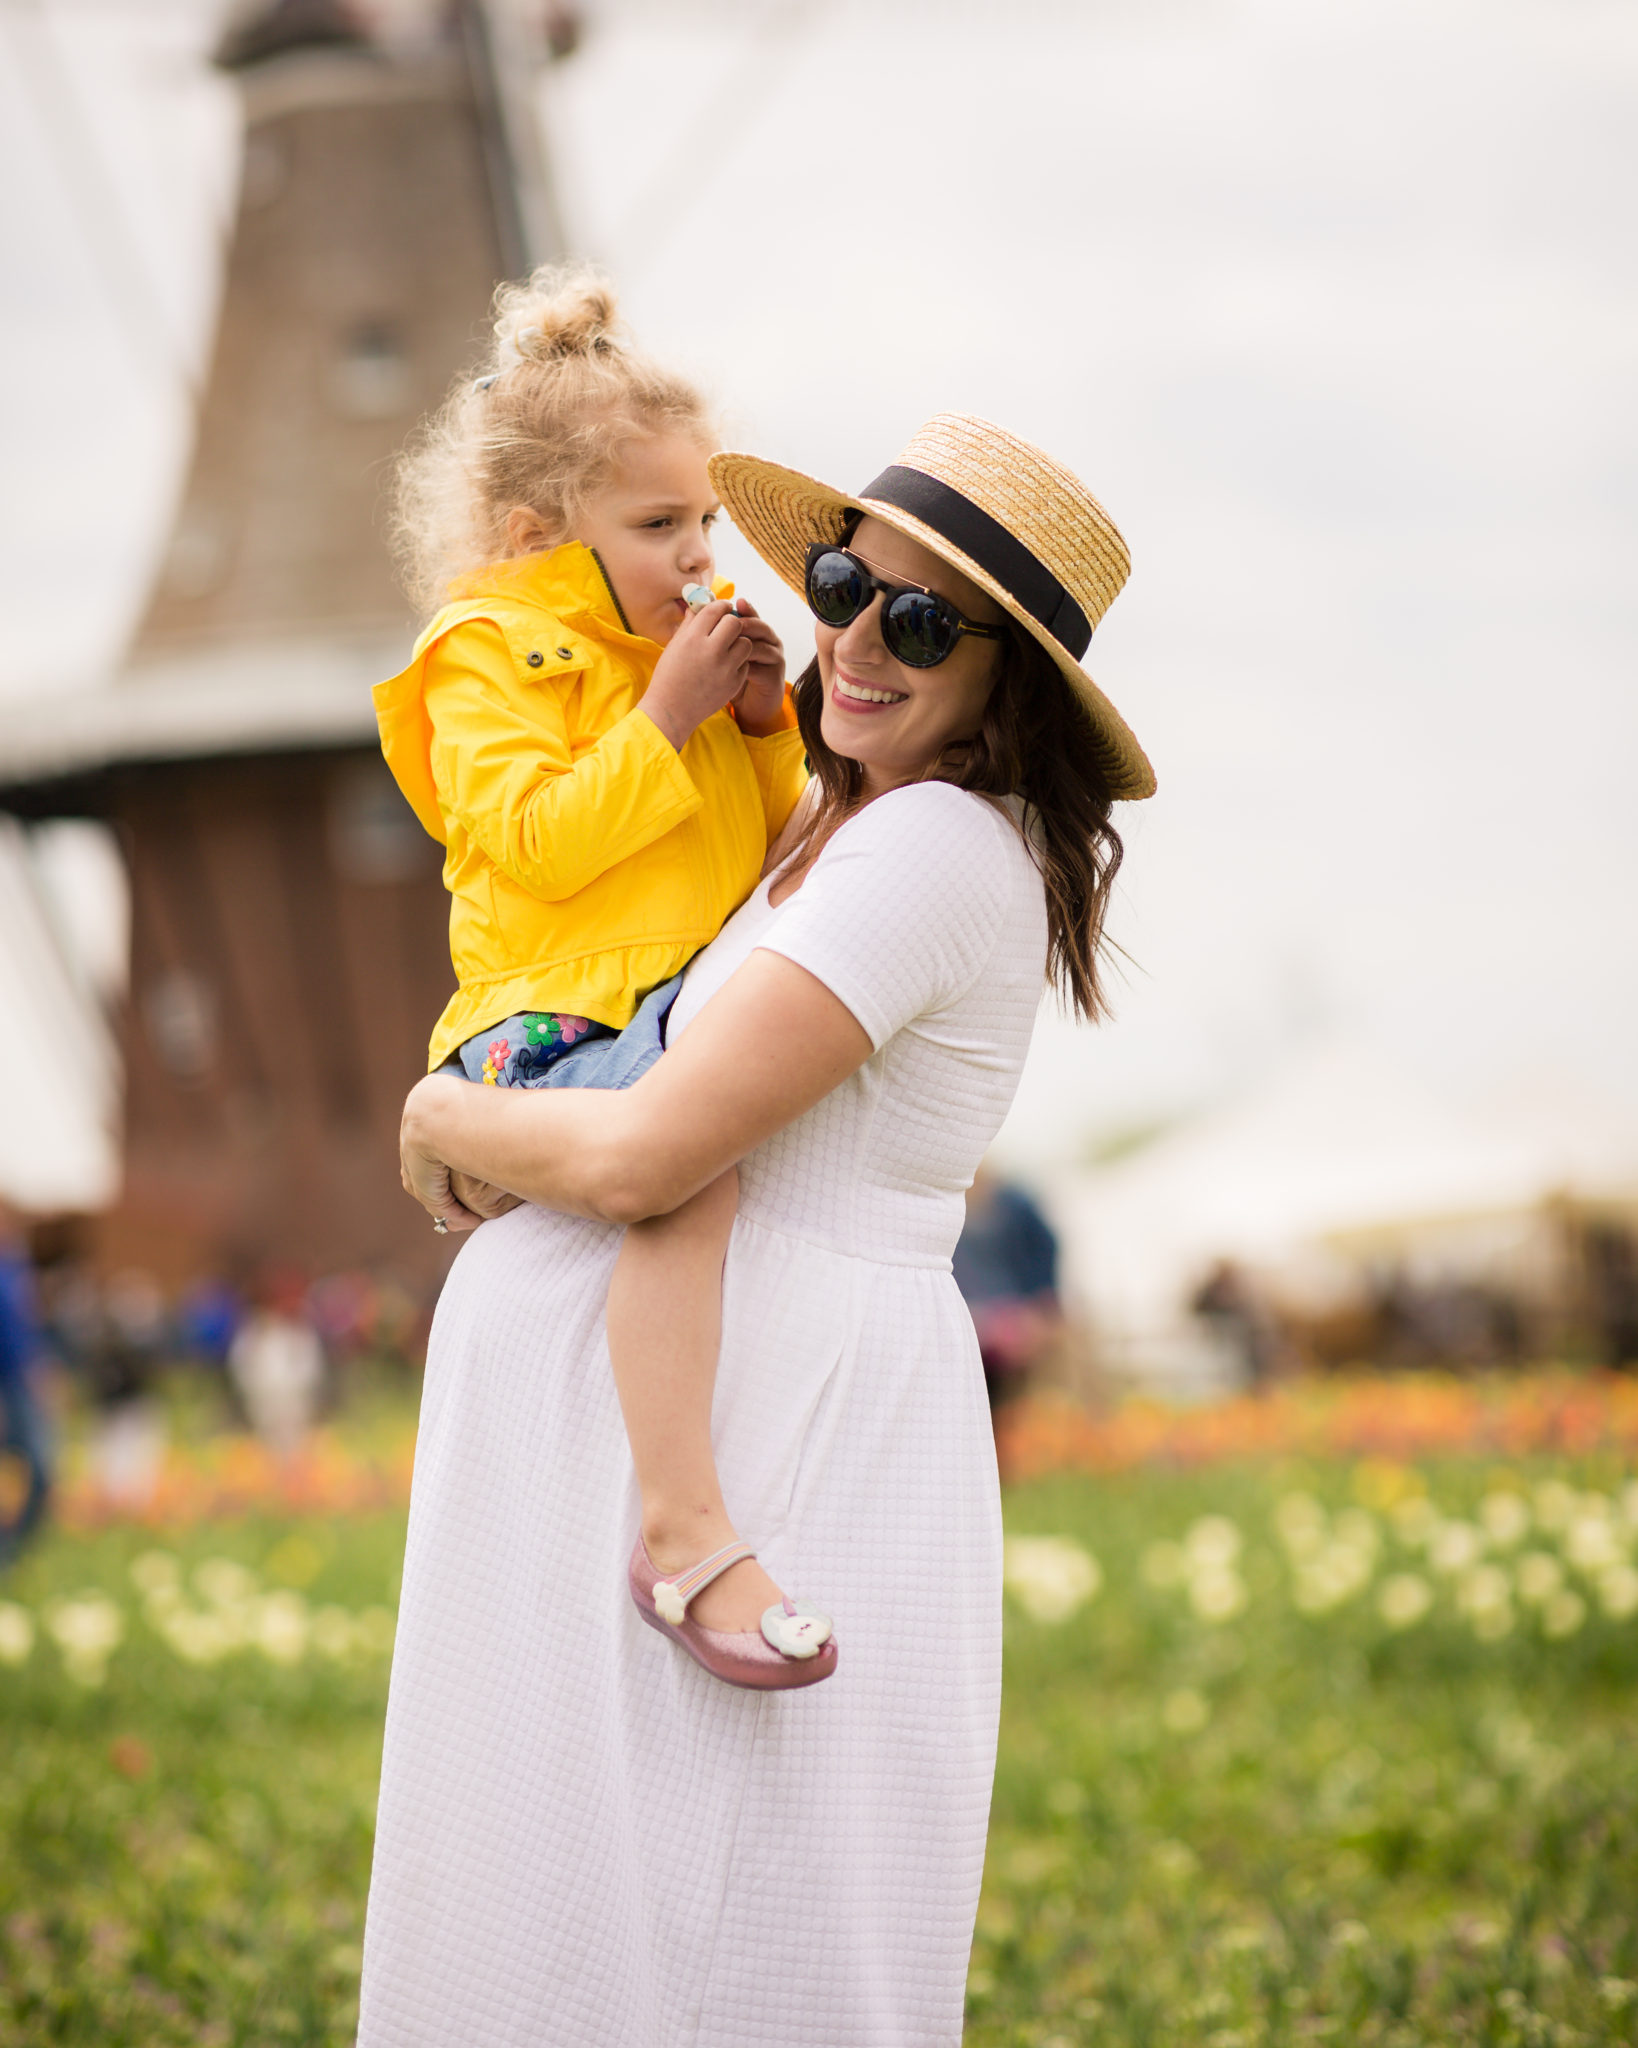 sonnet james nursing friendly dress and my thoughts on mothers day